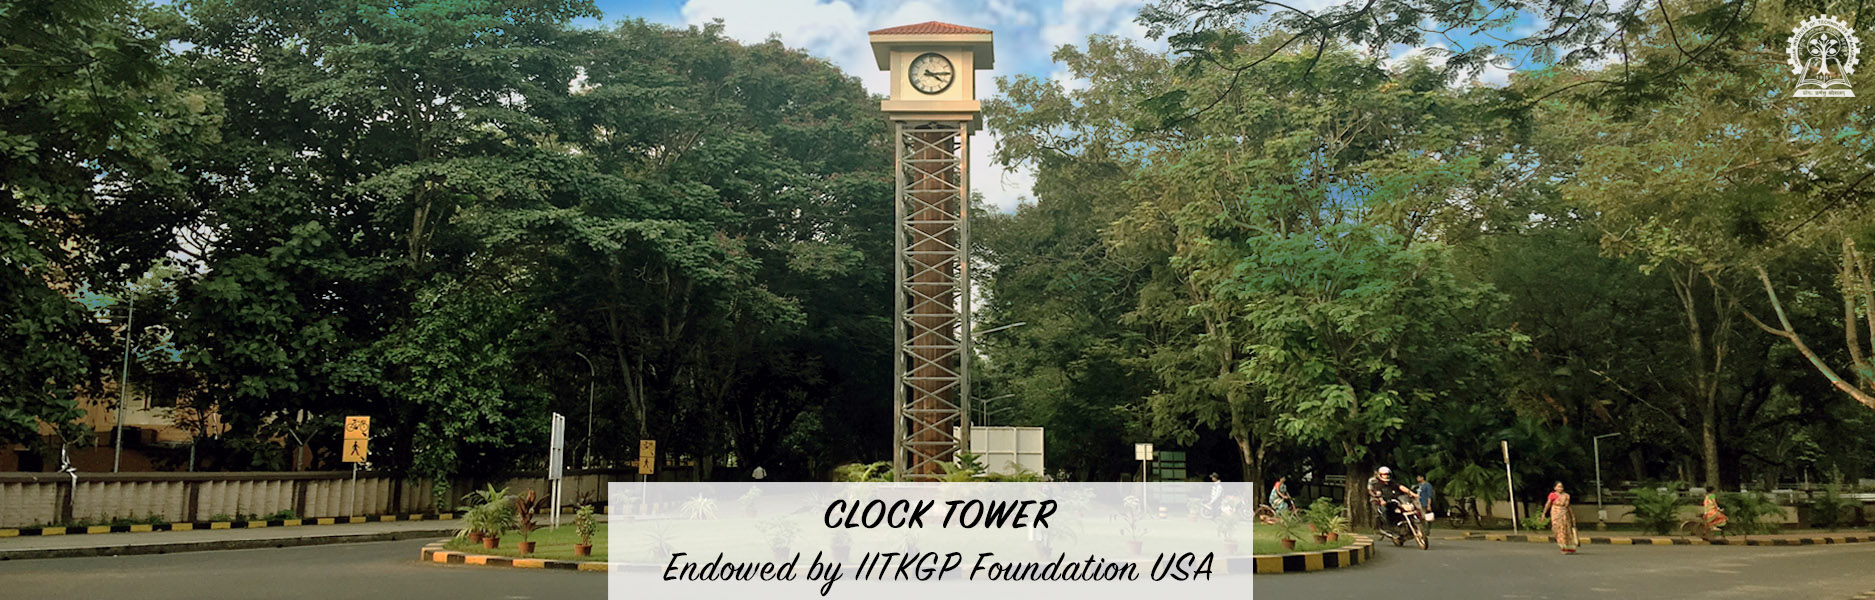 clock-tower-kgp